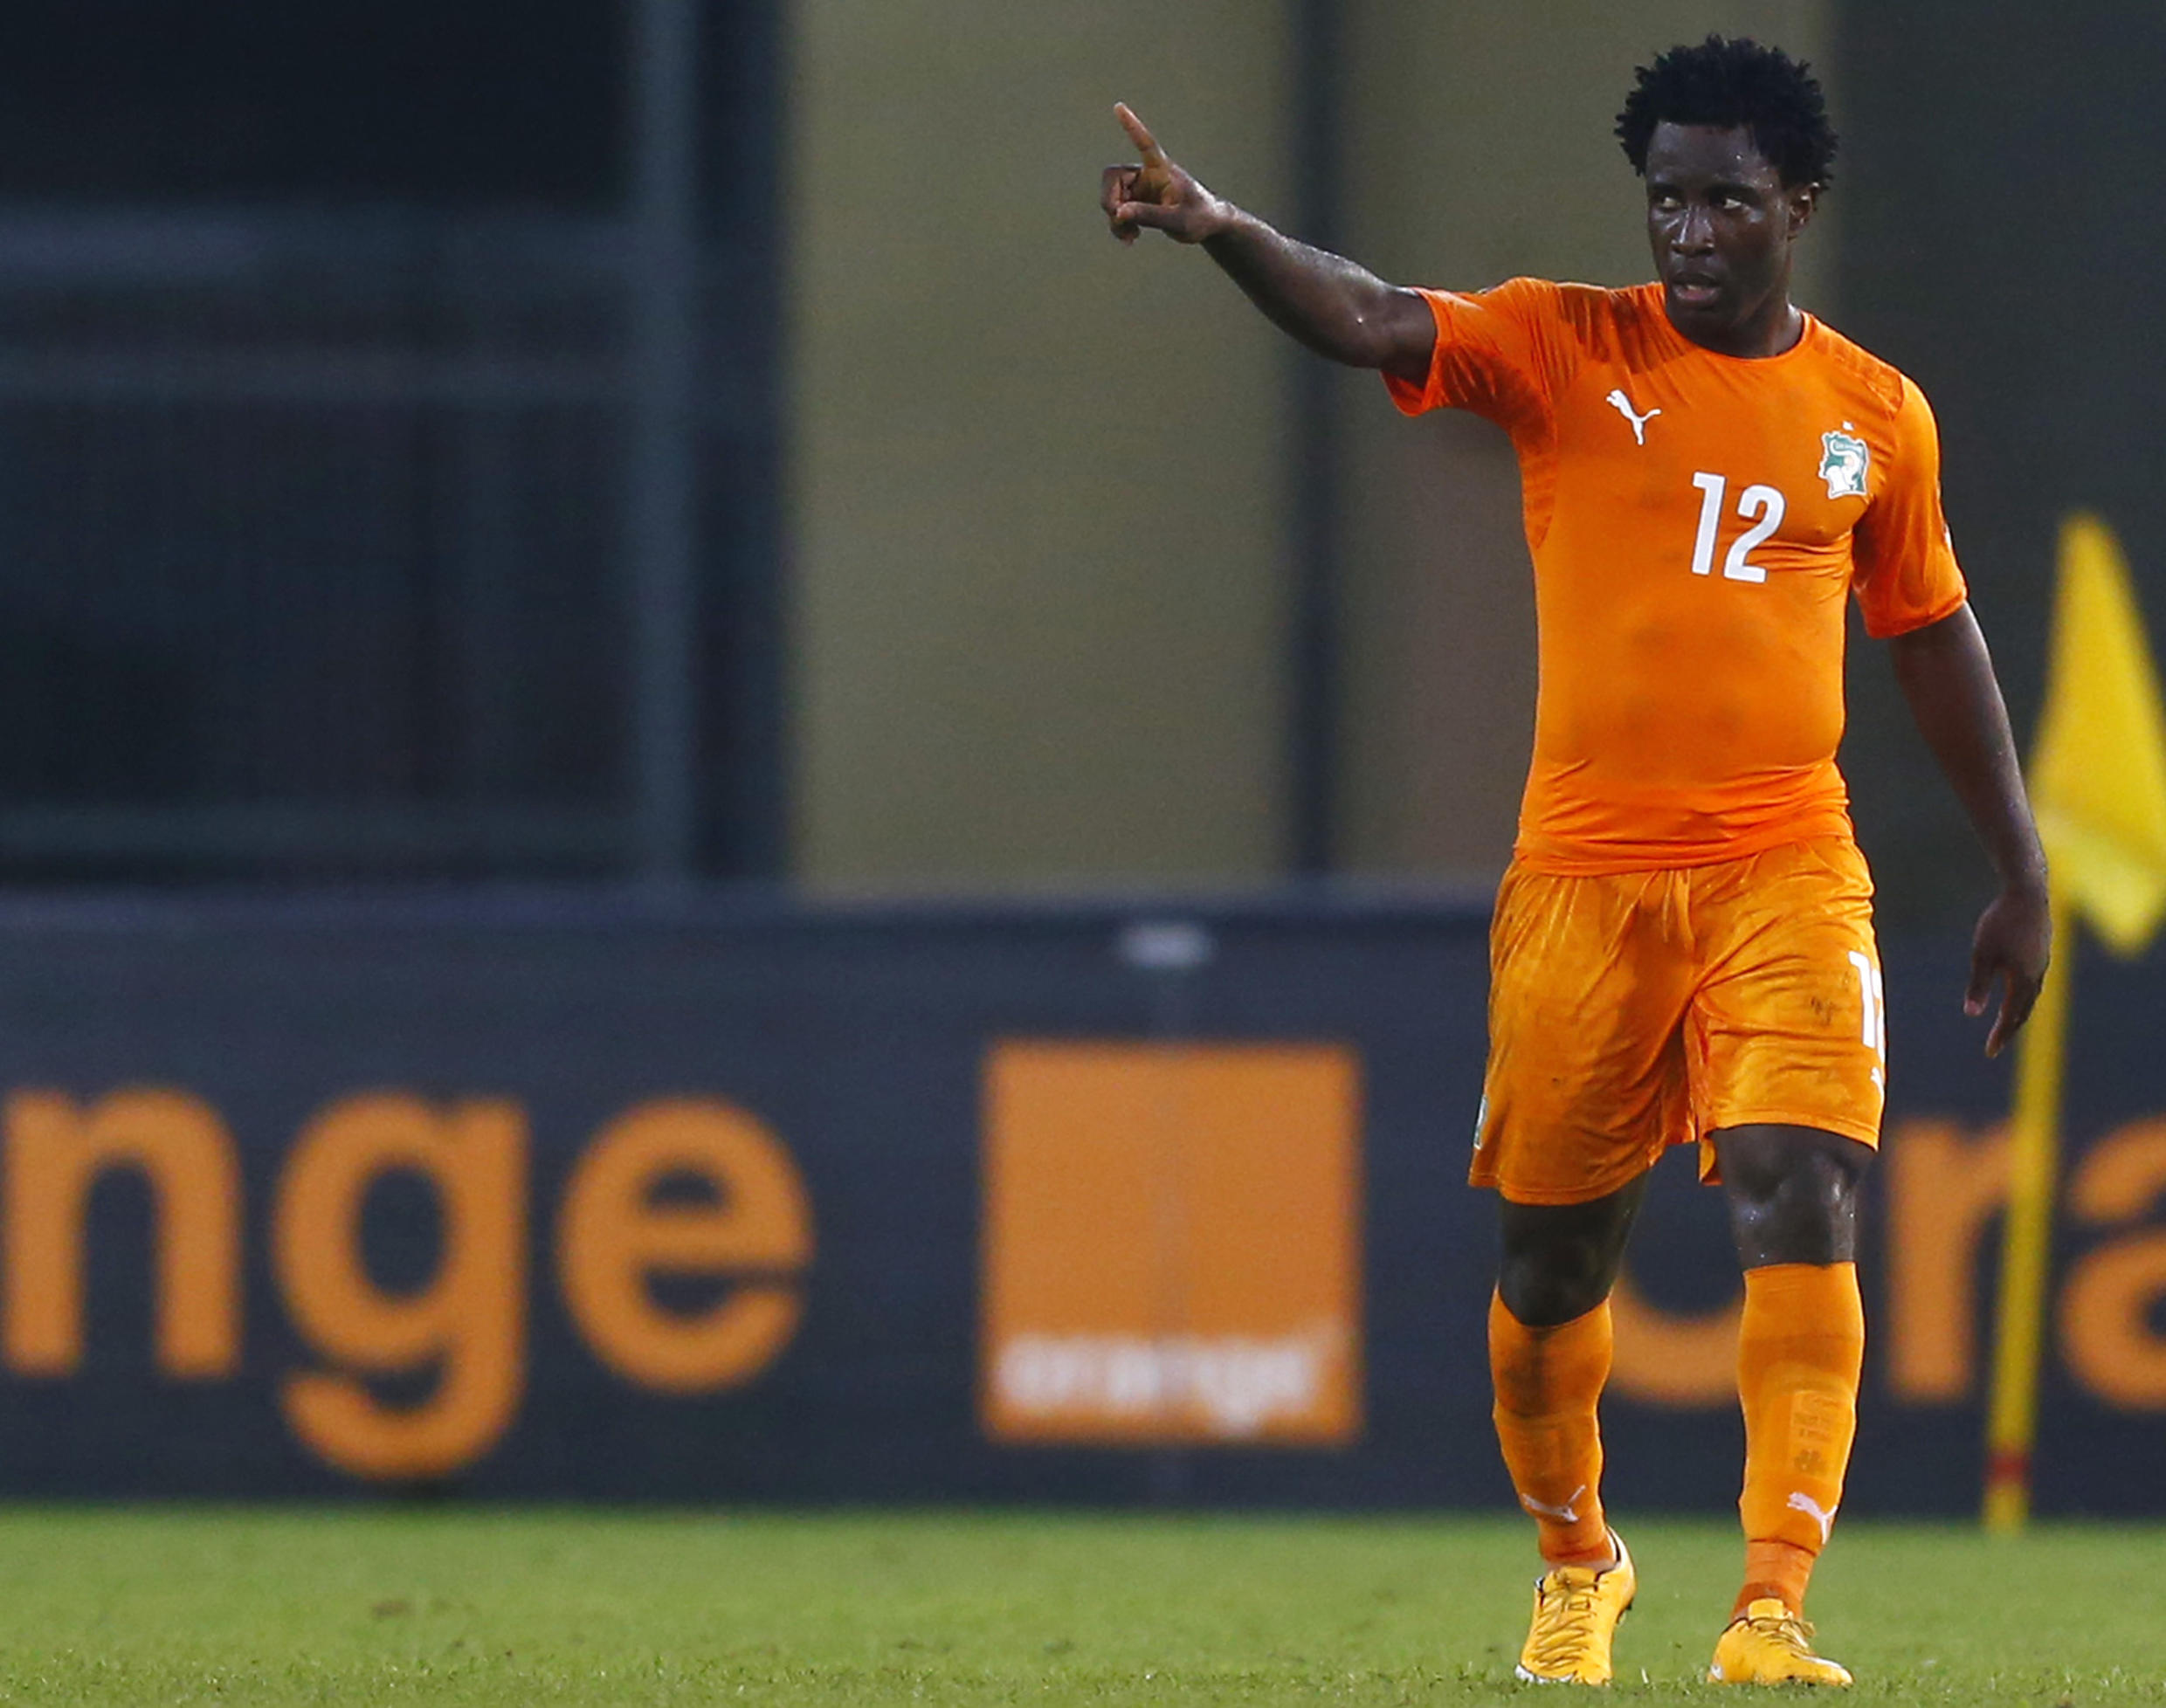 Côte d'Ivoire's Wilfried Bony celebrates his second goal during their match against Algeria